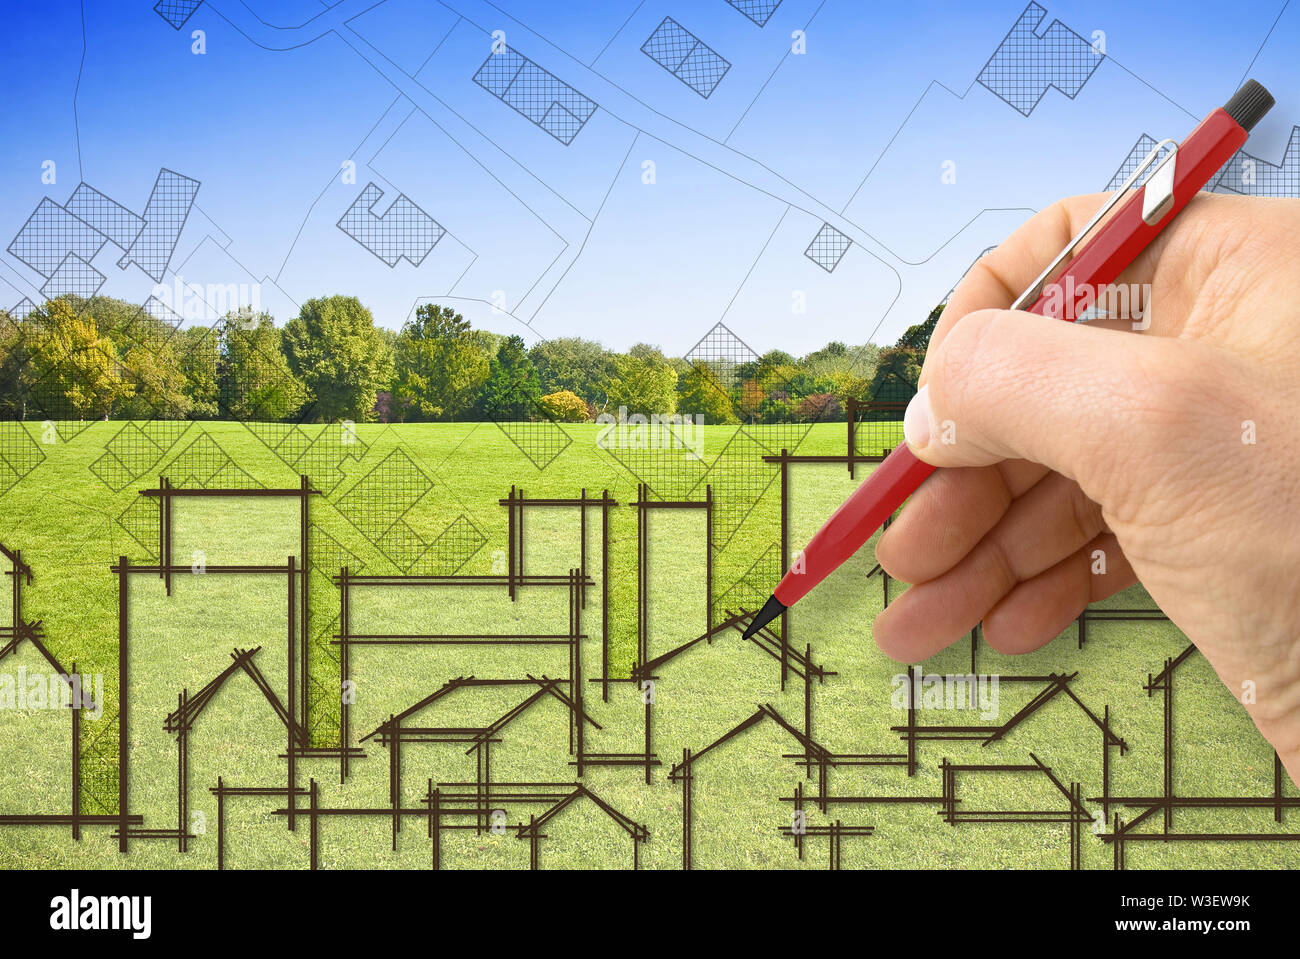 Cities and green spaces - concept image with architect drawing a residential district over a green mowed lawn with trees Stock Photo